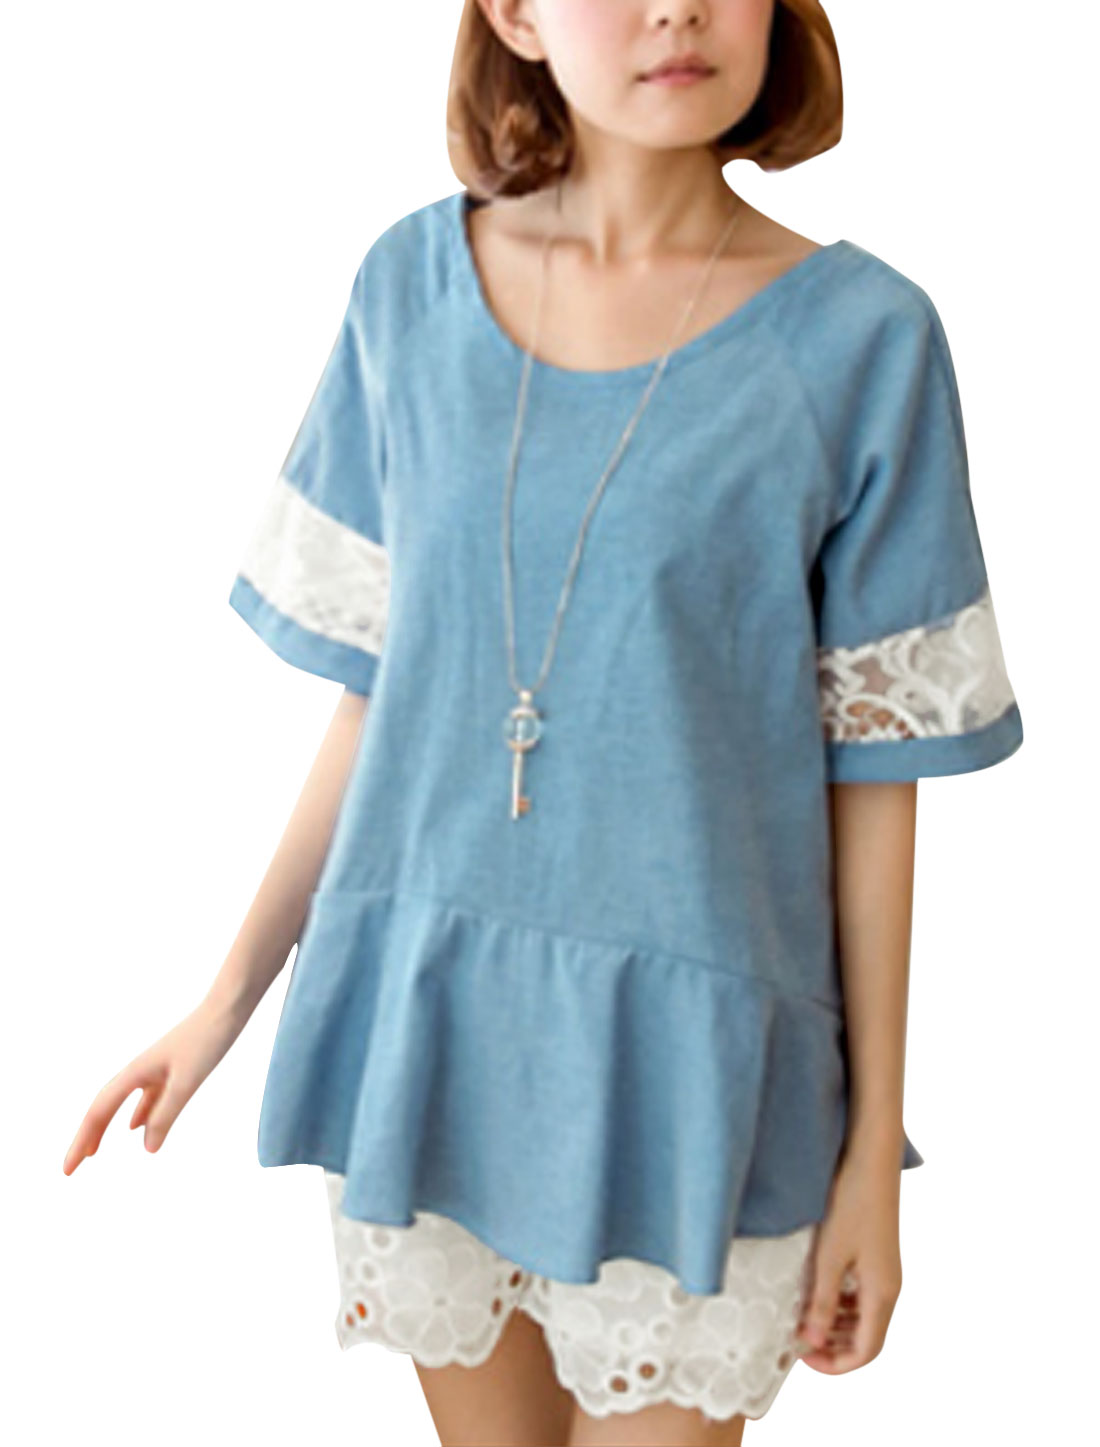 Lady Round Neck Tie Back Flouncing Style Casual Top Blue S